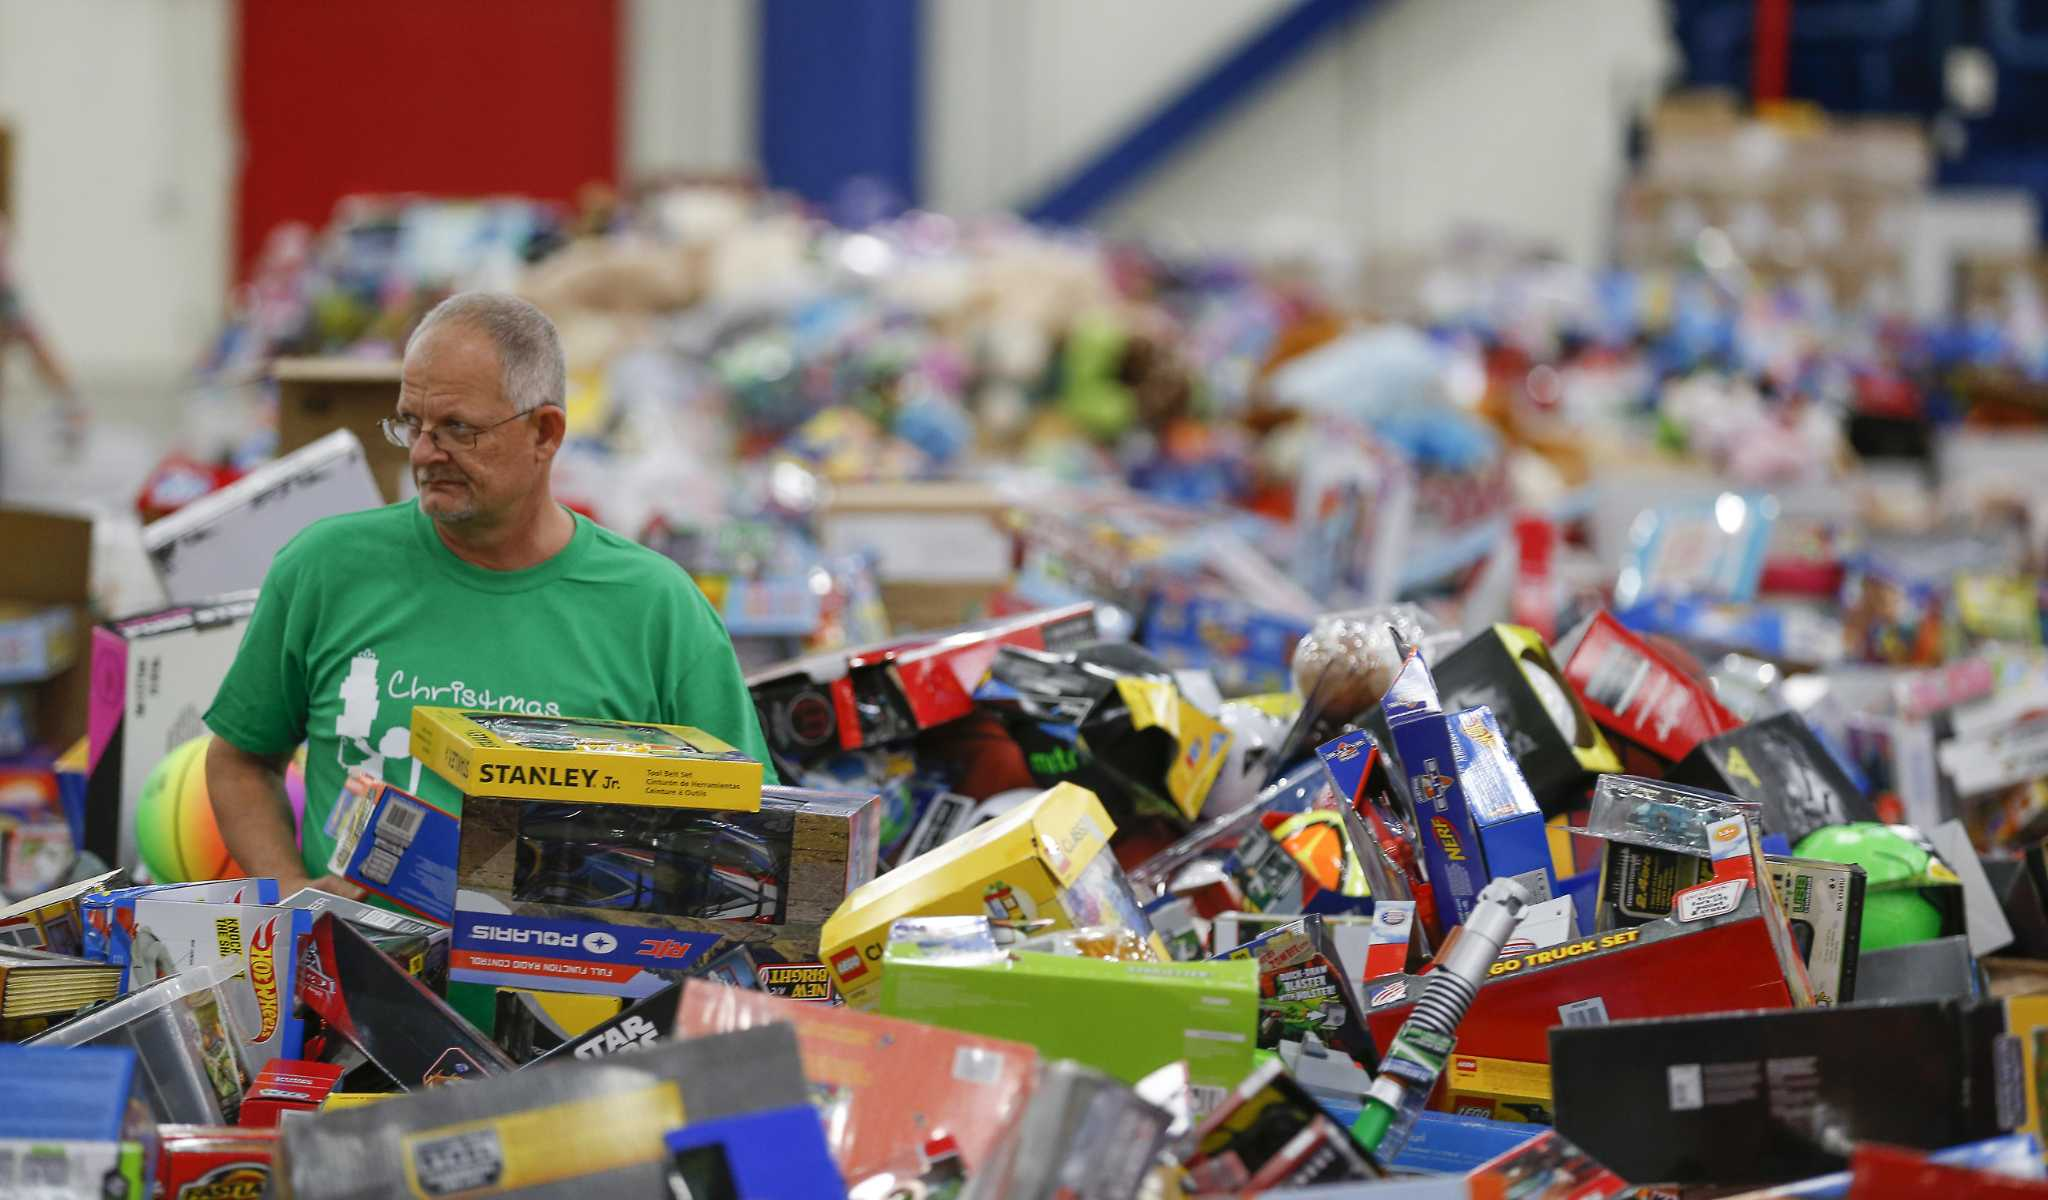 Toys for Tots supports local families in need during the holidays